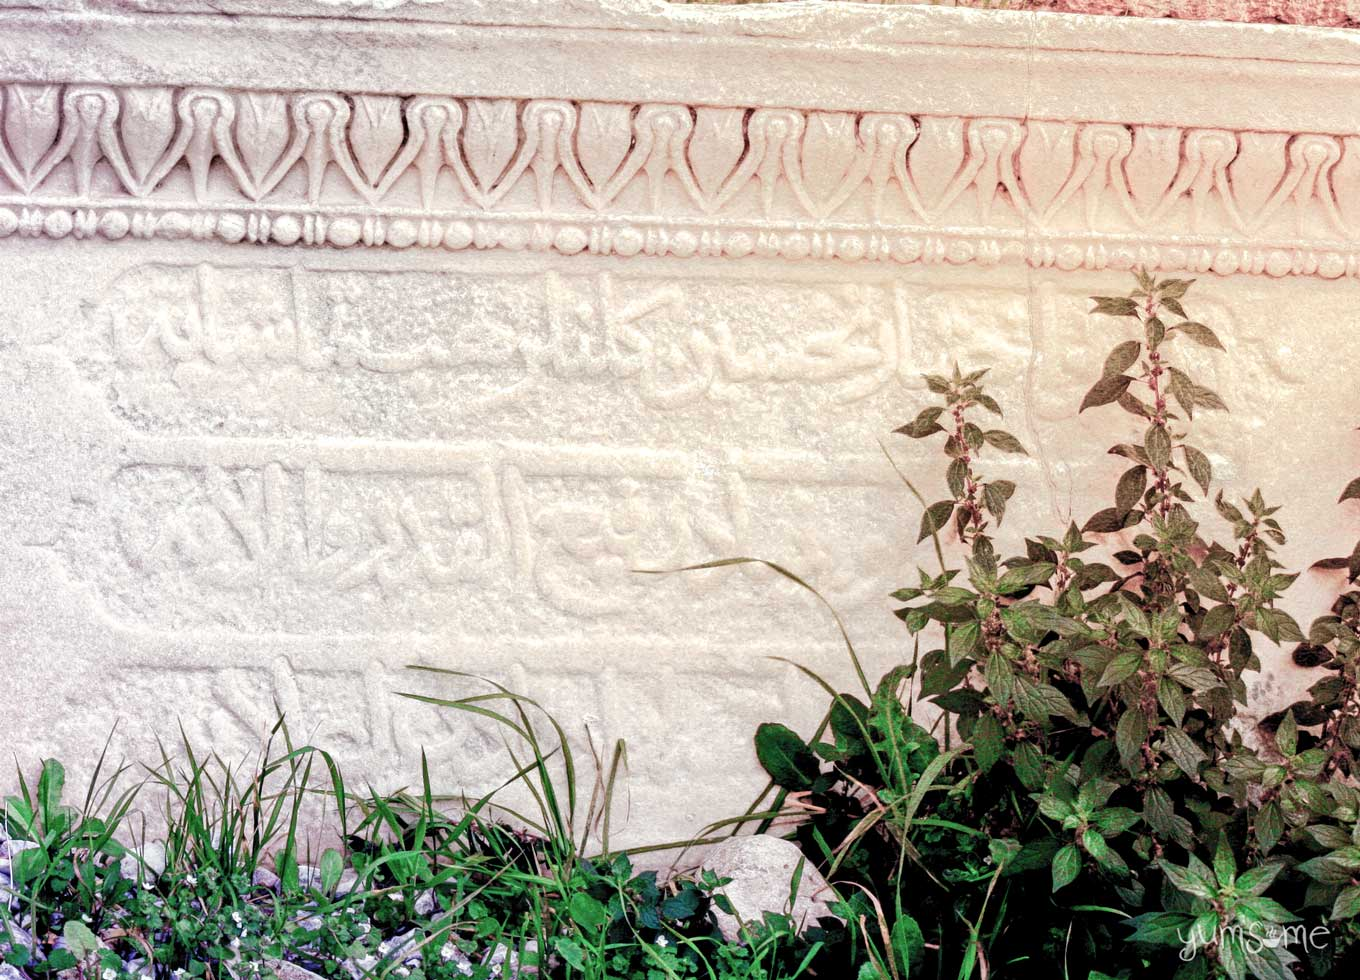 Inscriptions from the Ottoman period | yumsome.com